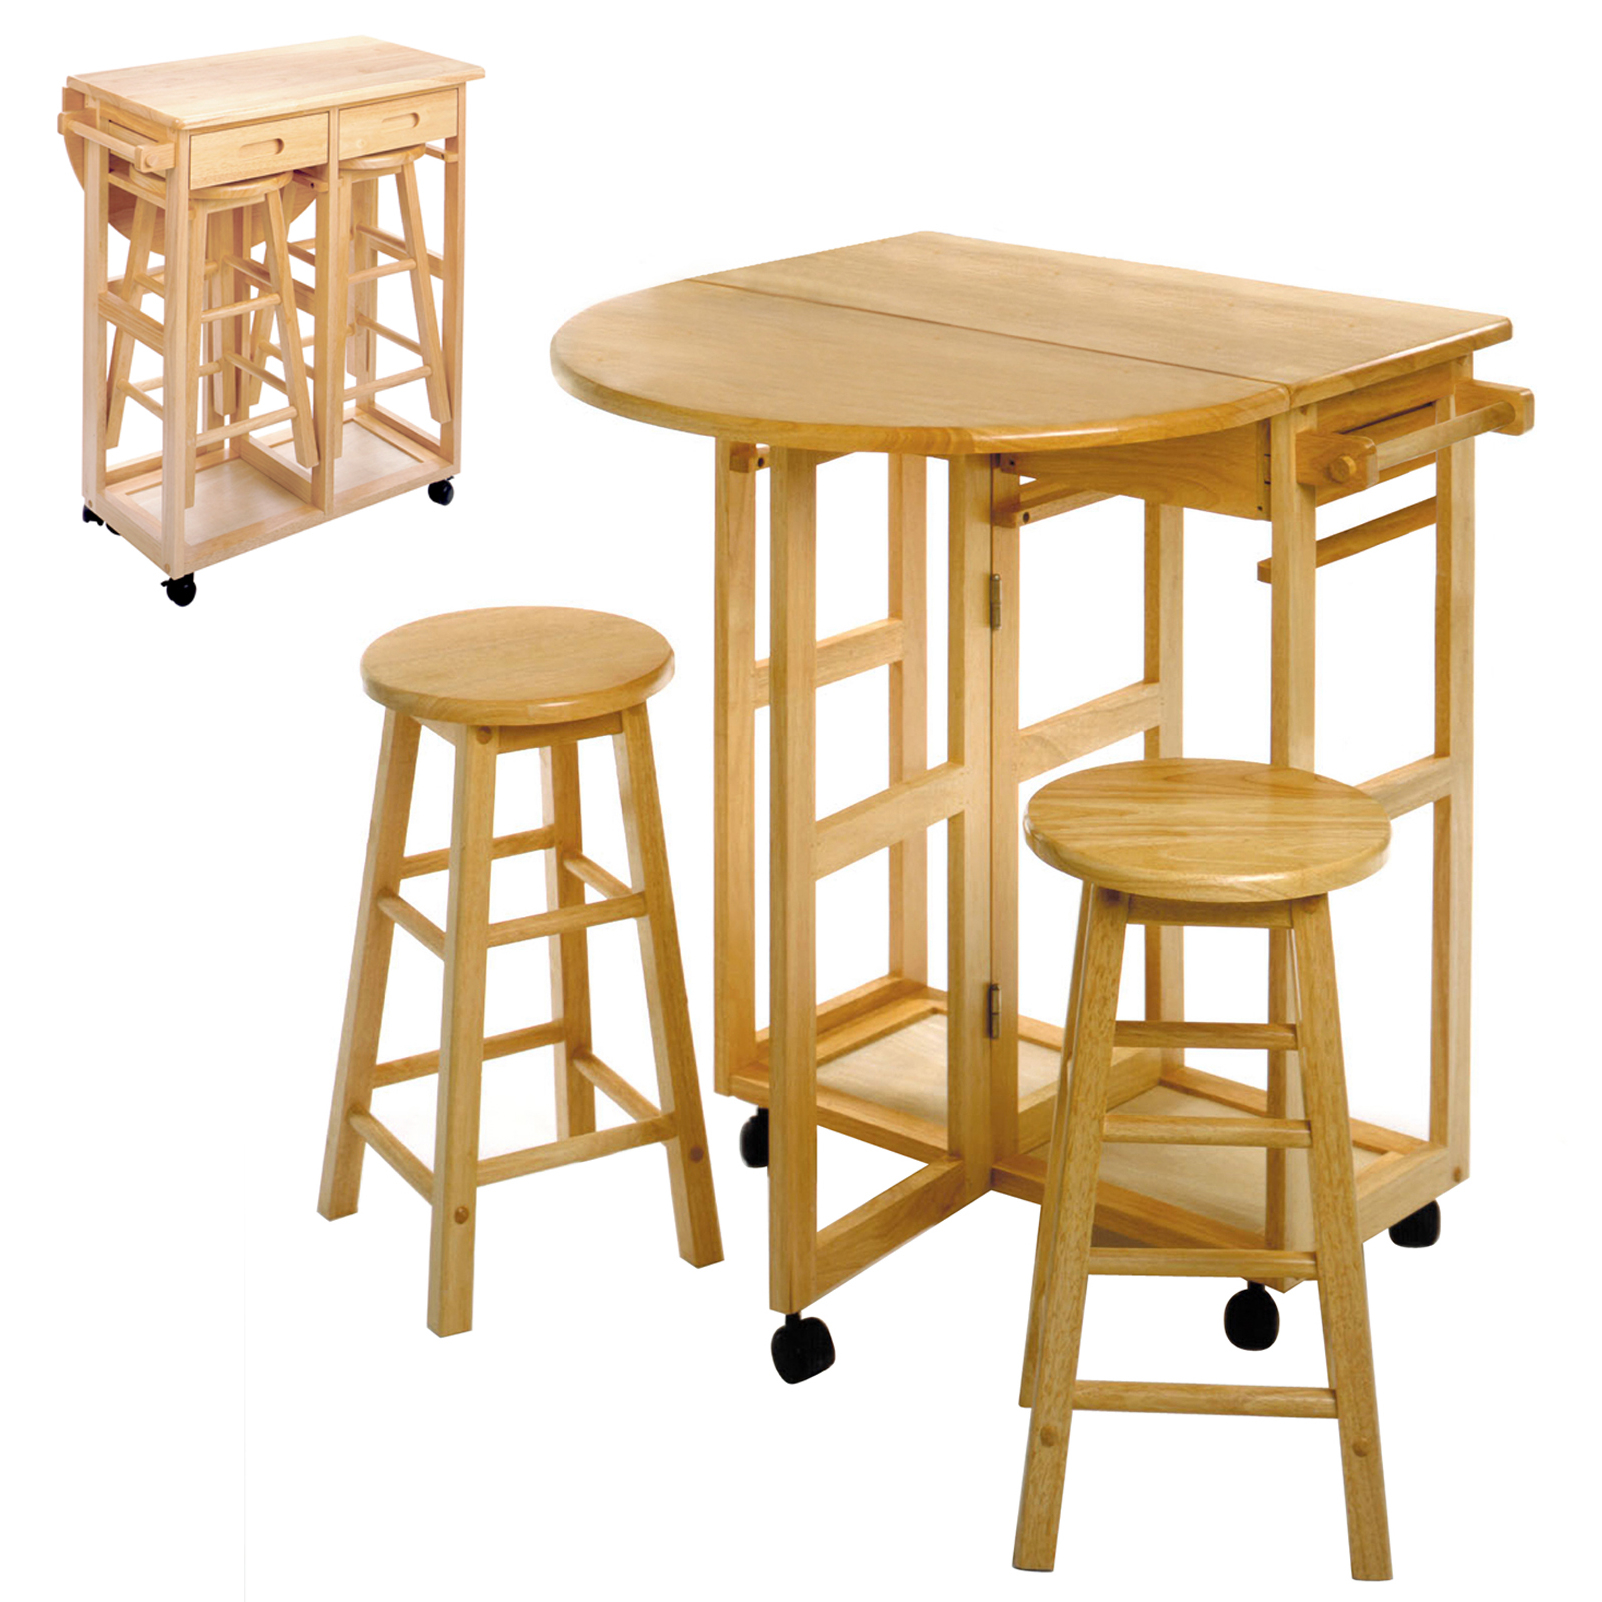 "Winsome Wood 89332 32.8"" Beech Wood Breakfast Bar Cart With 2 Round Stools"